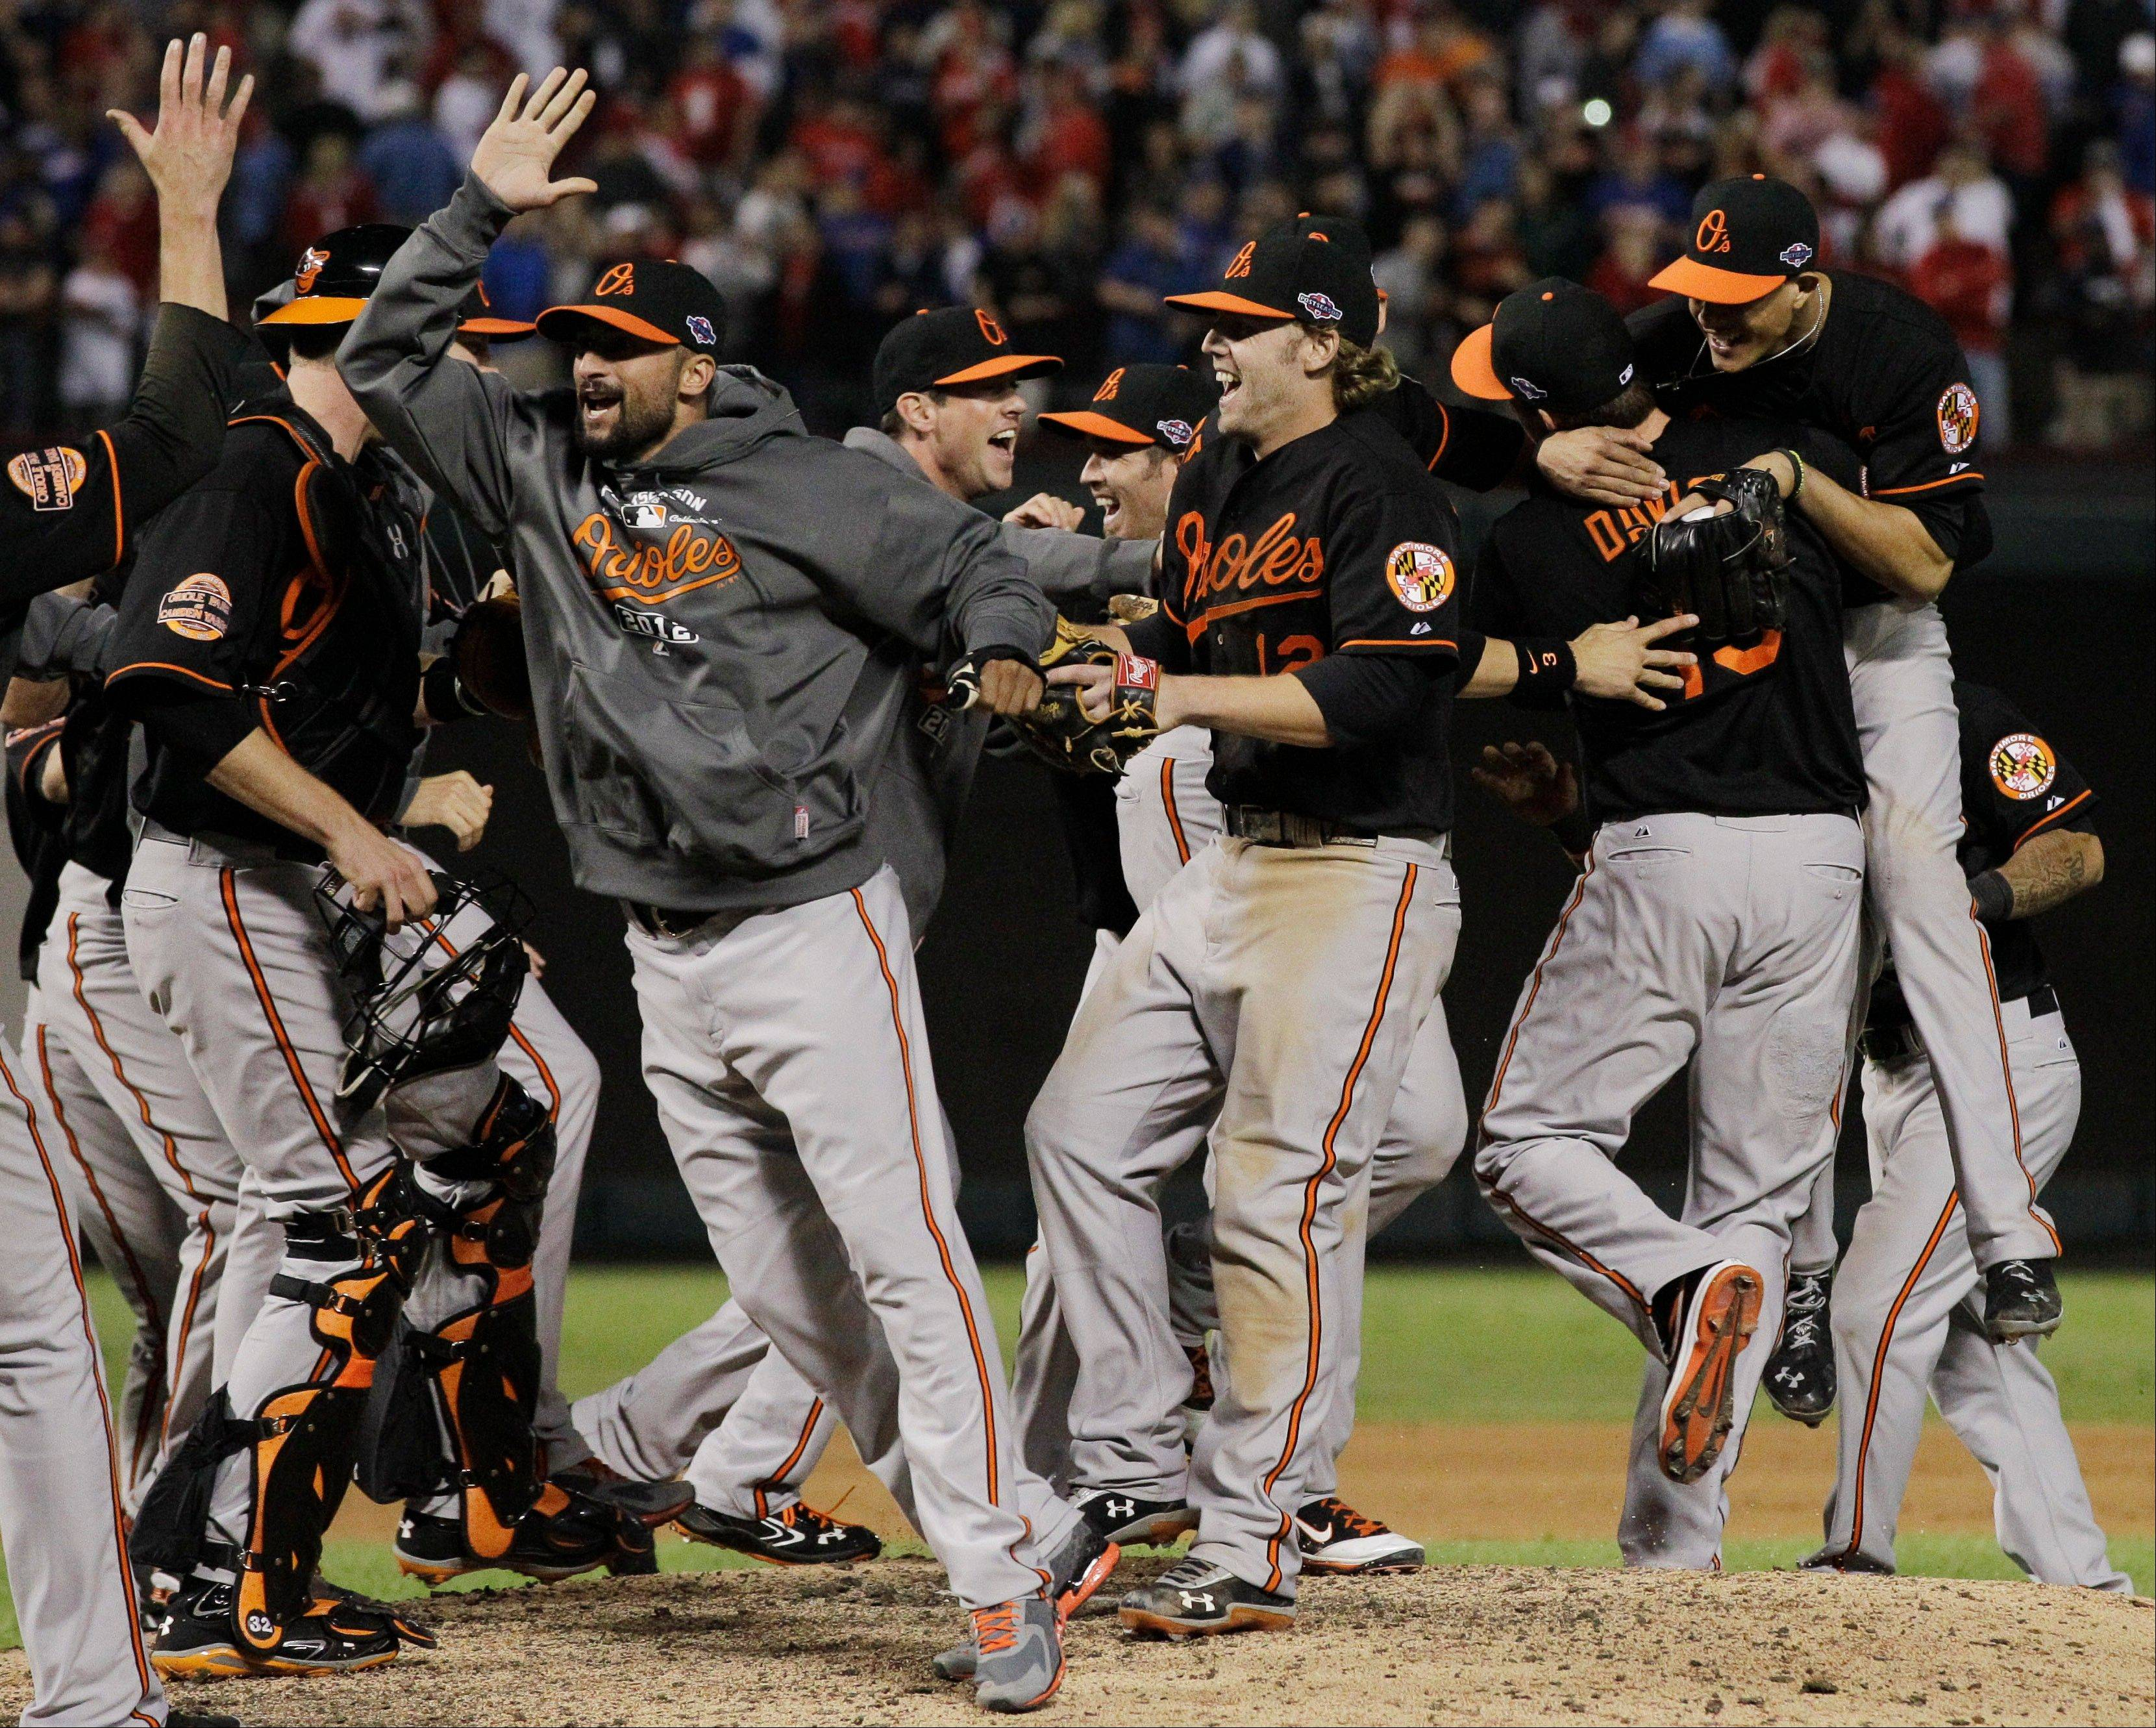 The Baltimore Orioles celebrate winning the American League wild-card playoff game Friday night against the Texas Rangers in Arlington, Texas.